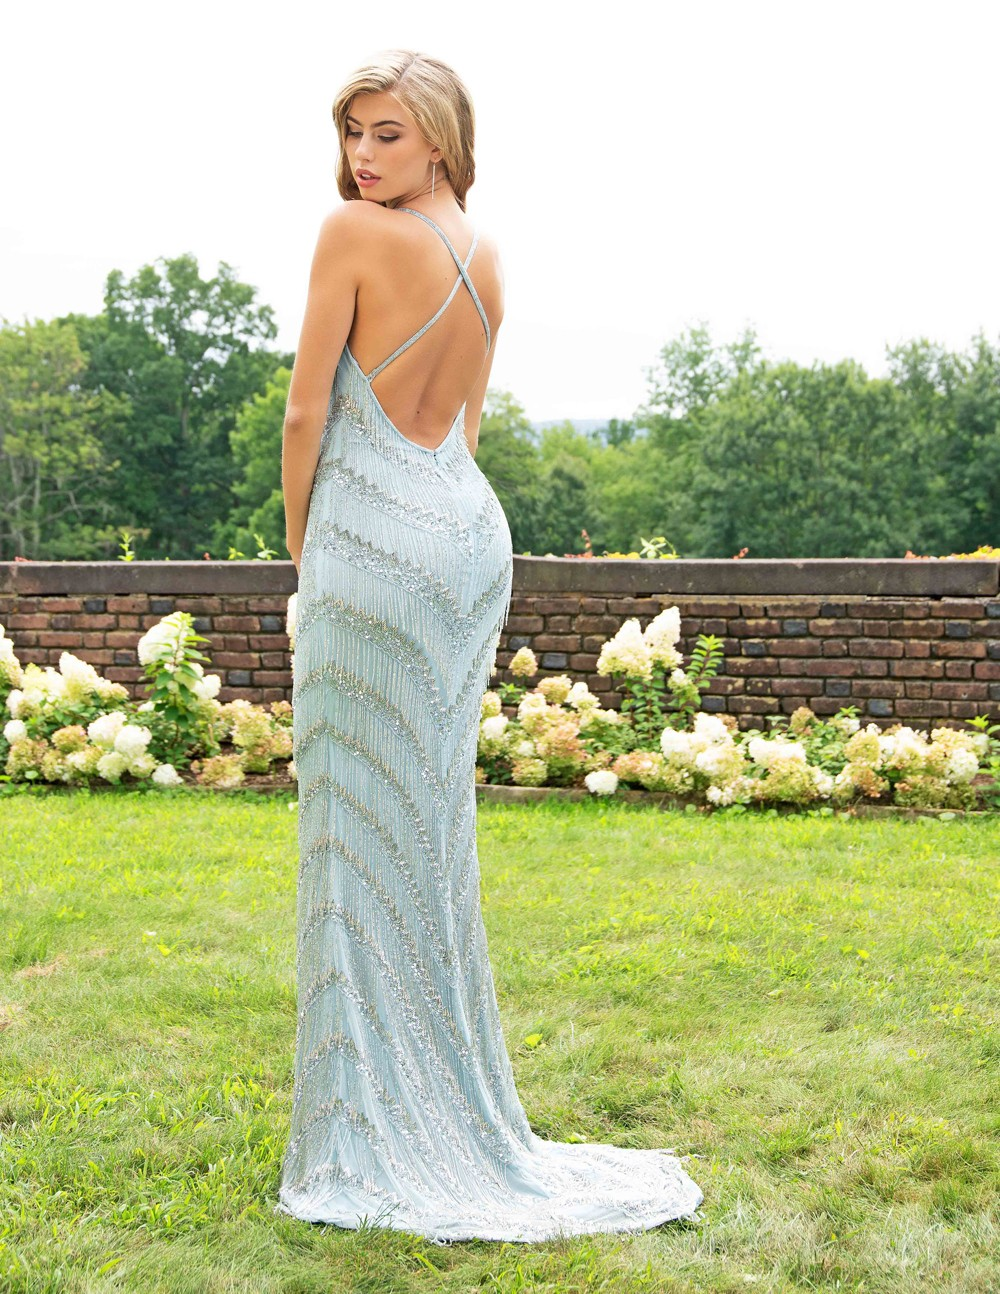 988b789b379 Primavera Couture 3213 Dress - MadameBridal.com